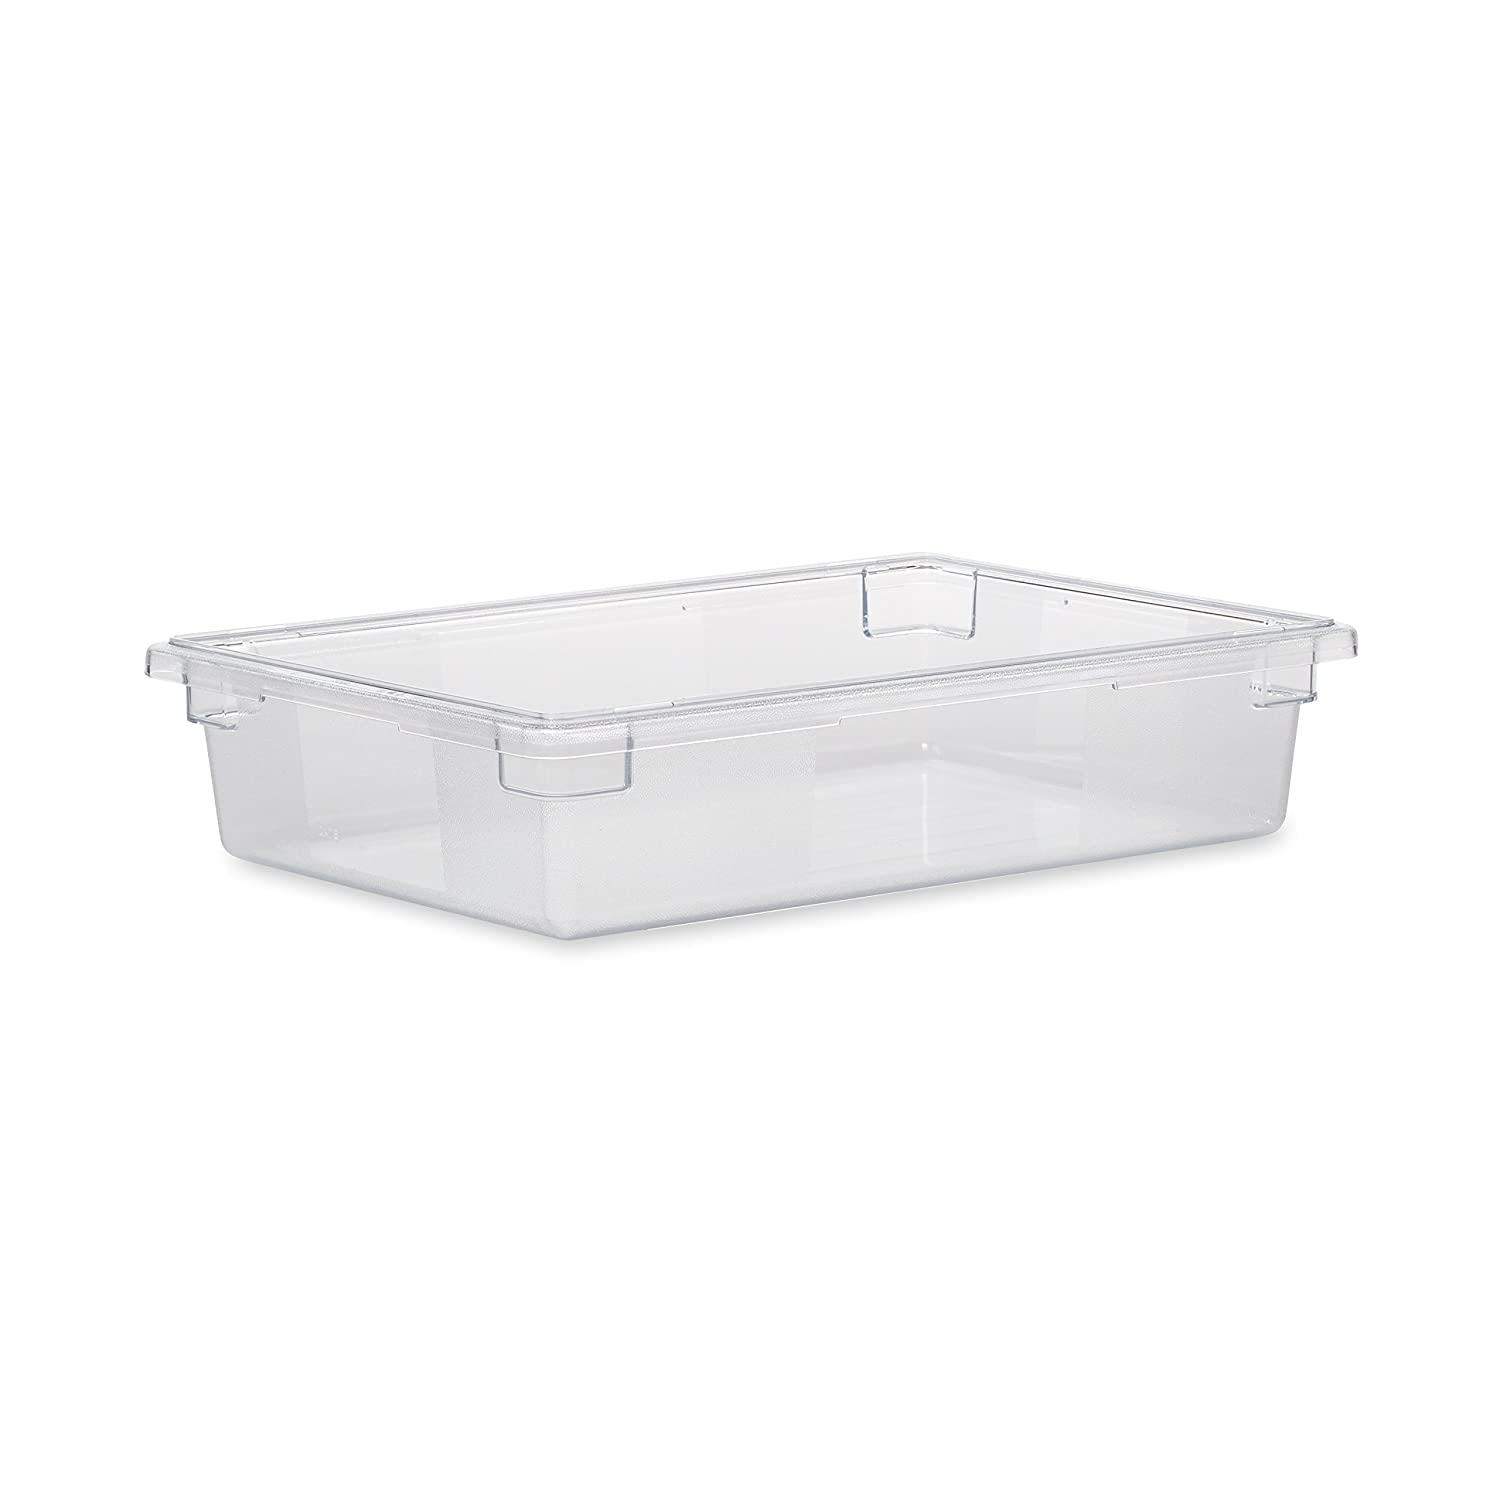 Rubbermaid Commercial Products Food Storage Box/Tote for Restaurant/Kitchen/Cafeteria, 8.5 Gallon, Clear (FG330800CLR)